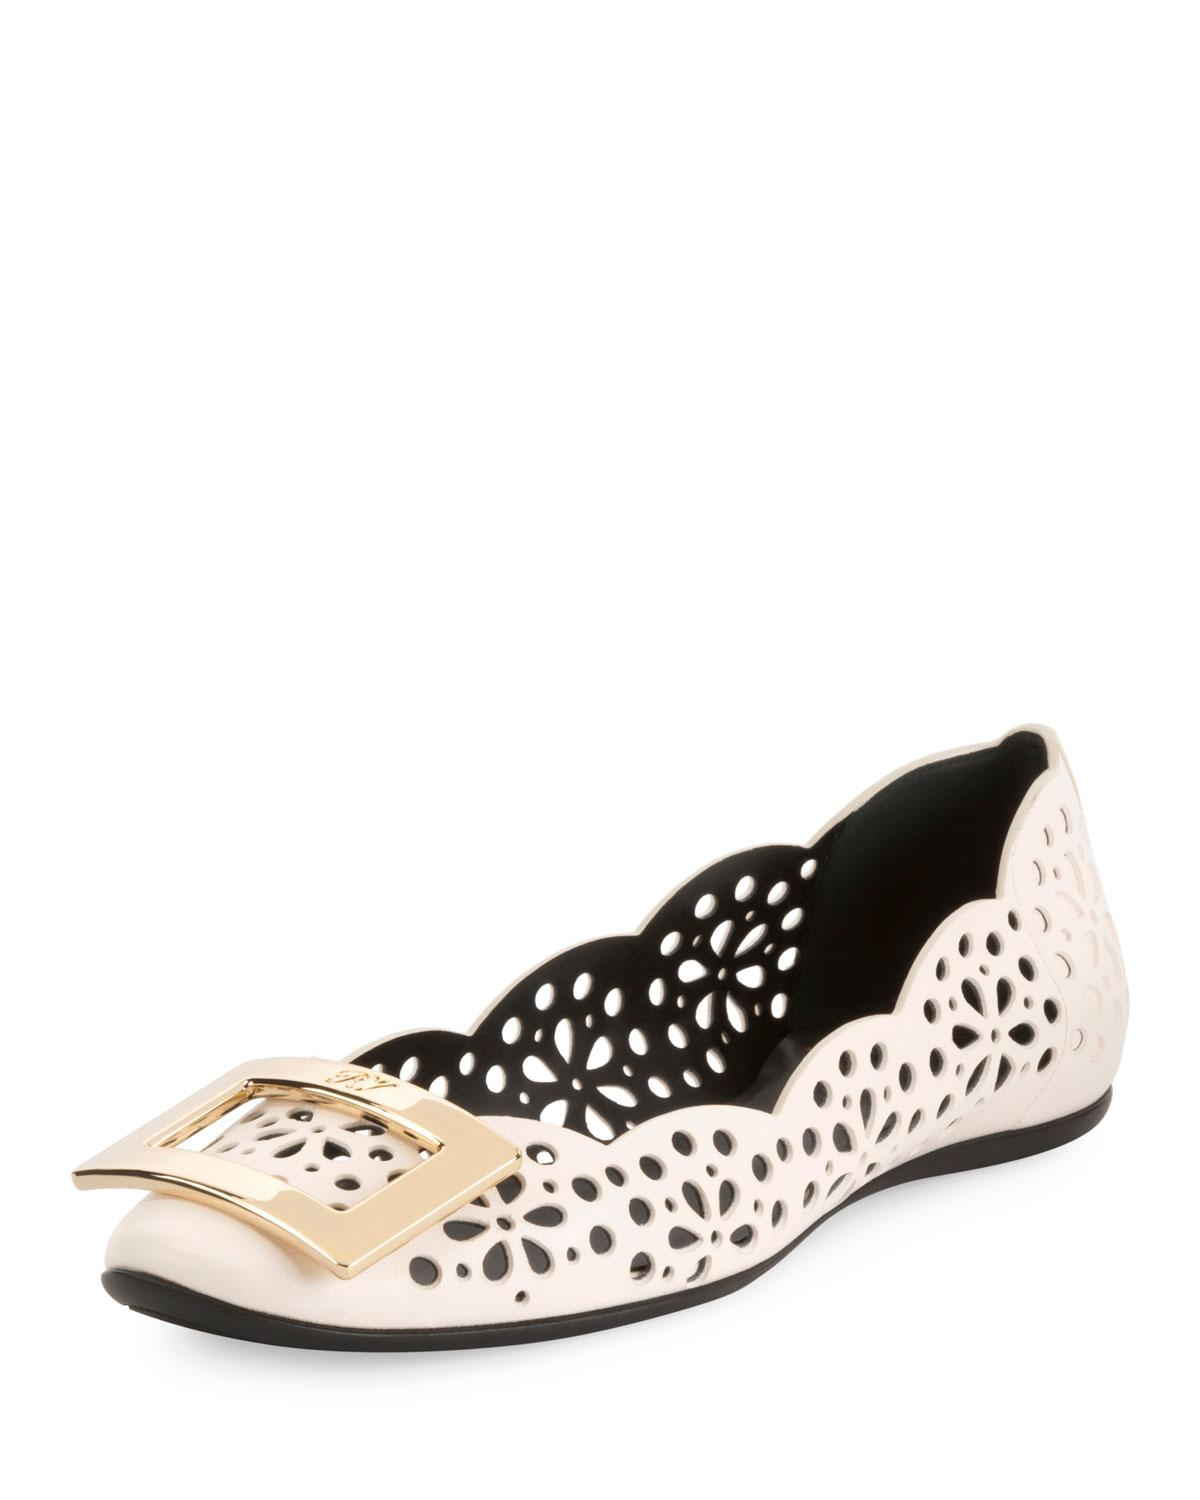 Roger Vivier Gommette Perforated Lamb Leather Ballet Flats With Metal Buckle In White